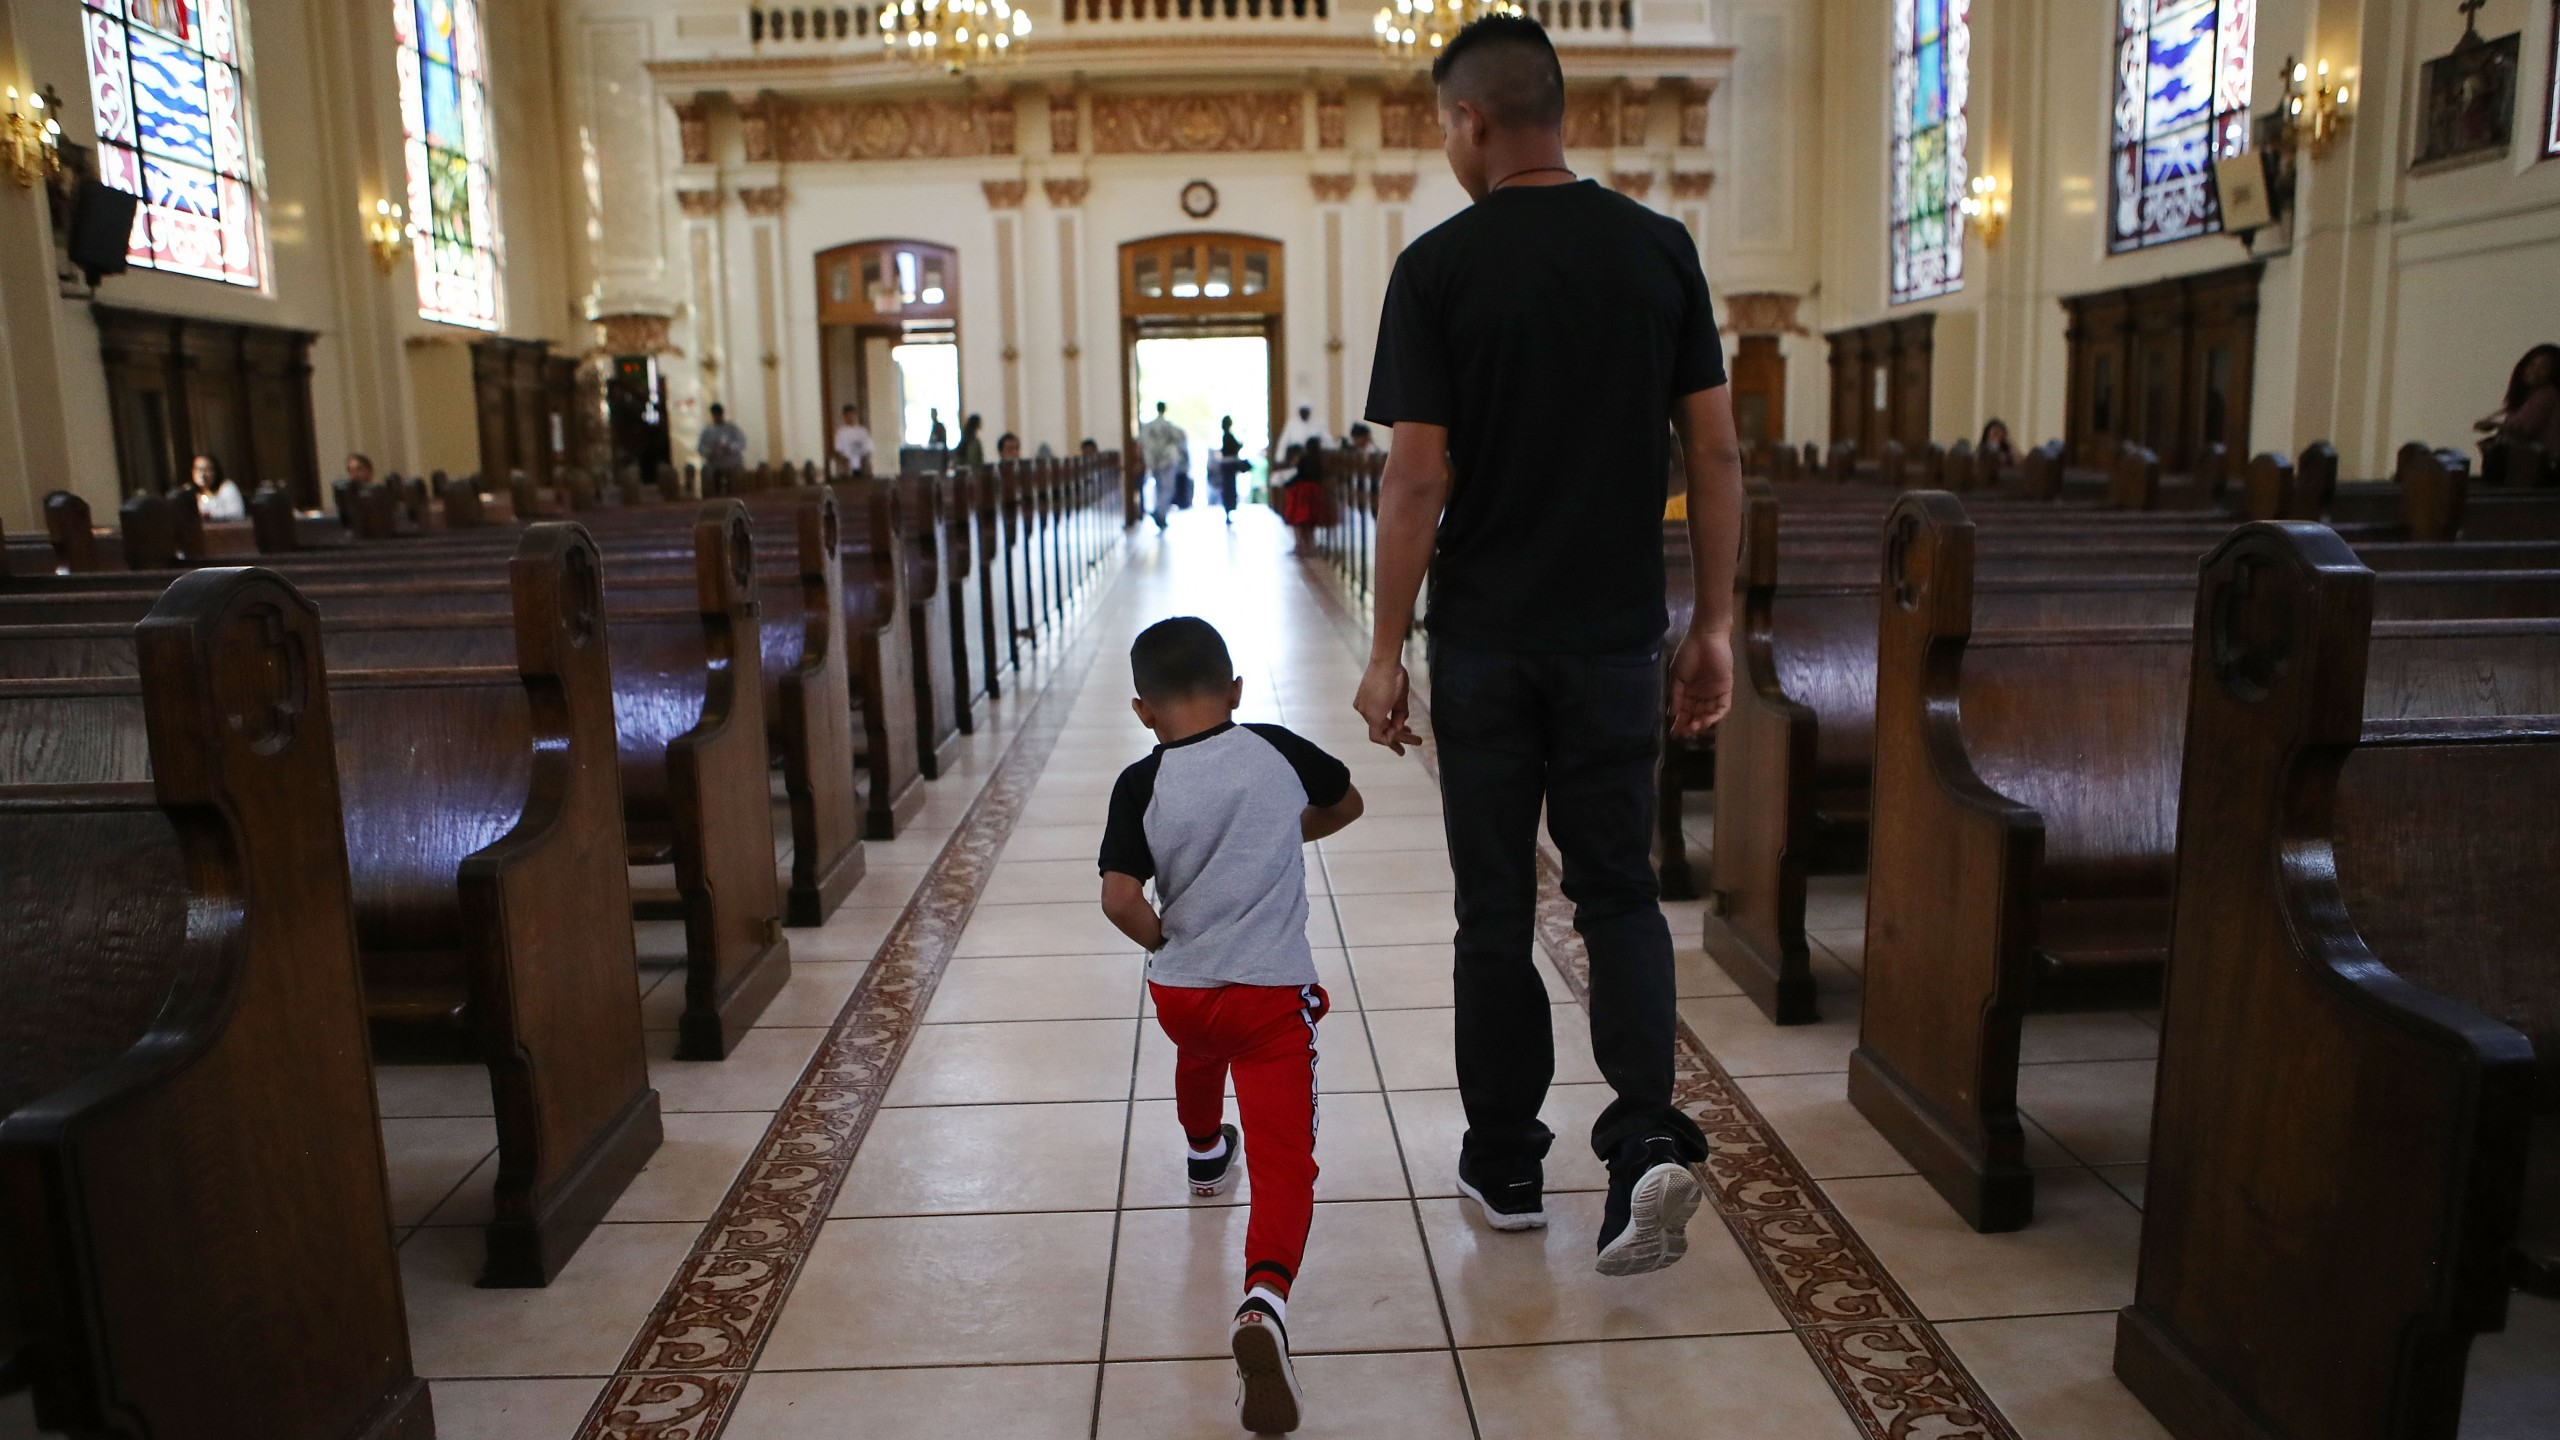 """Honduran father Juan and his six-year-old son Anthony depart after attending Sunday Mass on Sept. 9, 2018, in Oakland. They fled their country, leaving many family members behind, and crossed the U.S. border in April at a lawful port of entry in Brownsville, Texas seeking asylum. They were soon separated and spent the next 85 days apart in detention. Juan was sent to Tulsa, Oklahoma, while his son was sent to a detention shelter in New York. They were one of almost 2,600 families separated due to the Trump administration's """"zero tolerance"""" immigration policy. (Credit: Mario Tama/Getty Images)"""